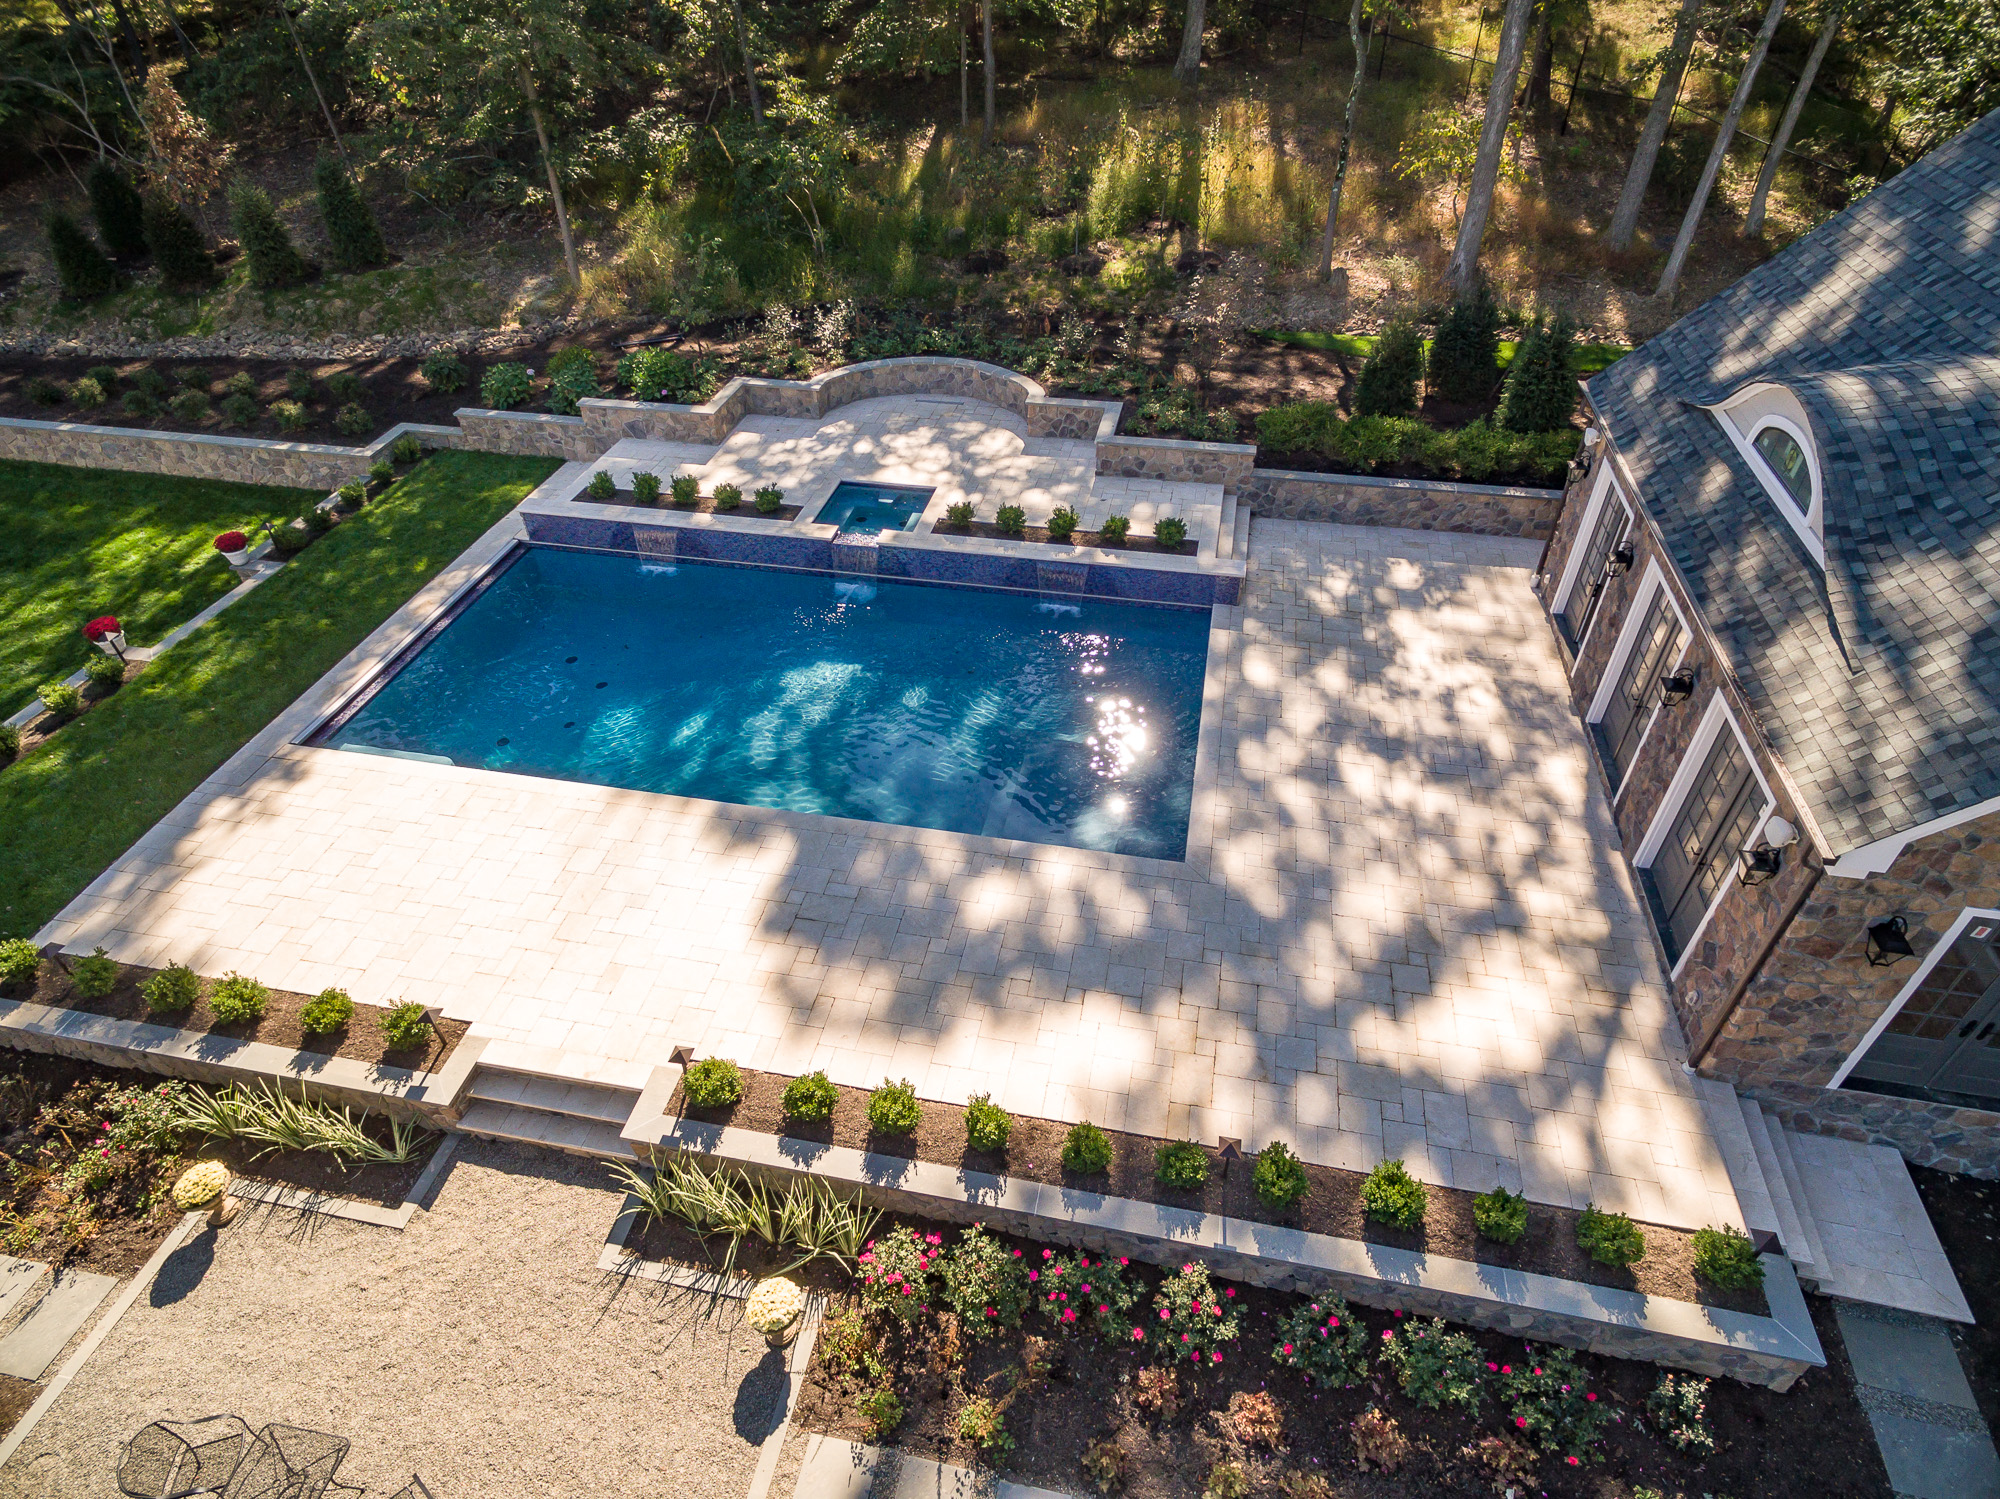 Linked:Pool Designs Perma Pools,Perma Pools Inground Swimming Pool Builders  Indianapolis,Pool Liner Reviews Best AboveGround Pool Liners,ICF Swimming  Pools ...